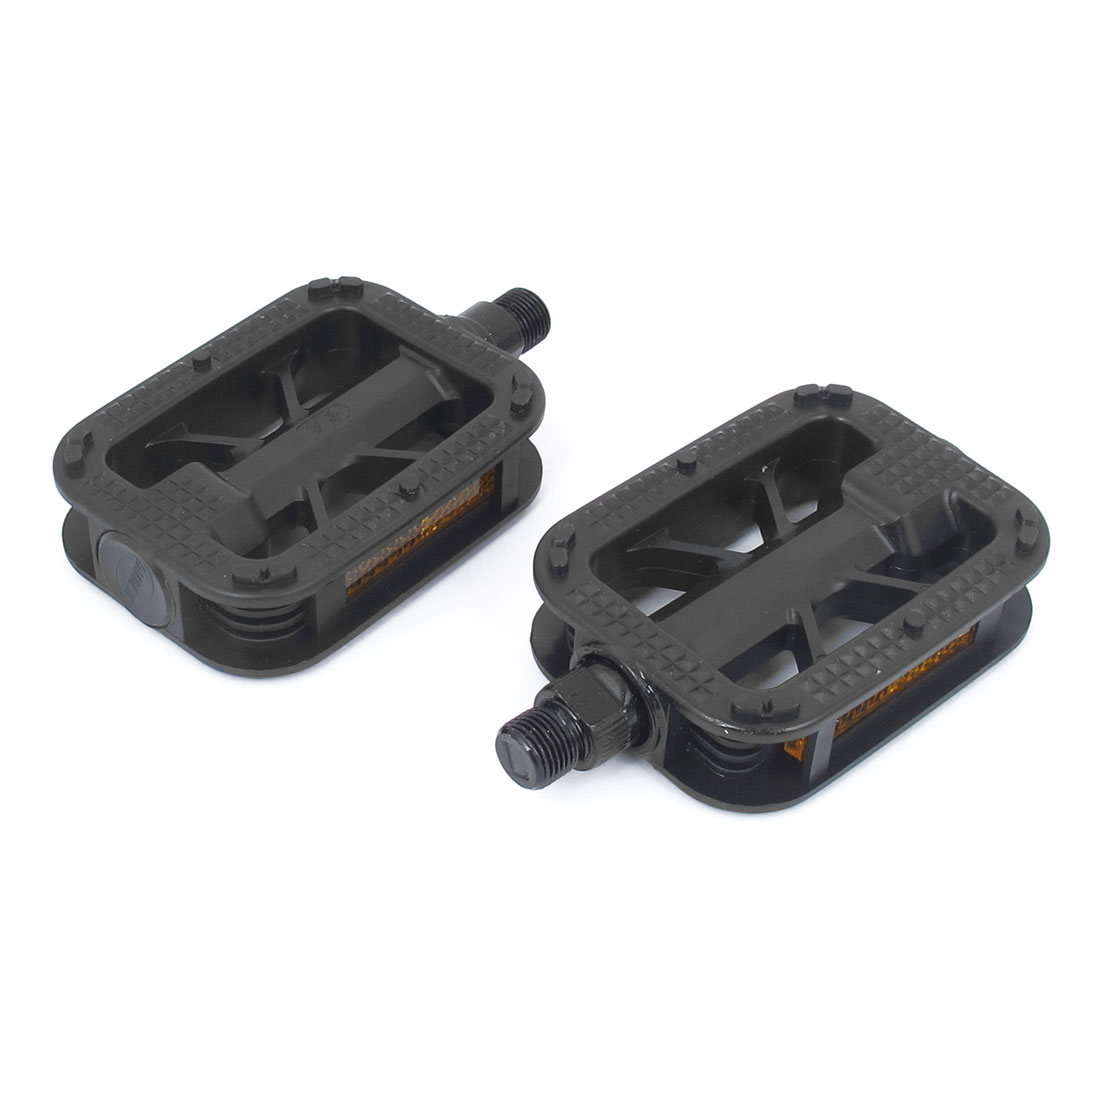 Mountain Road Bike Cycling Bicycle Plastic Nonslip Foot Platform Pedals Black Yellow Pair